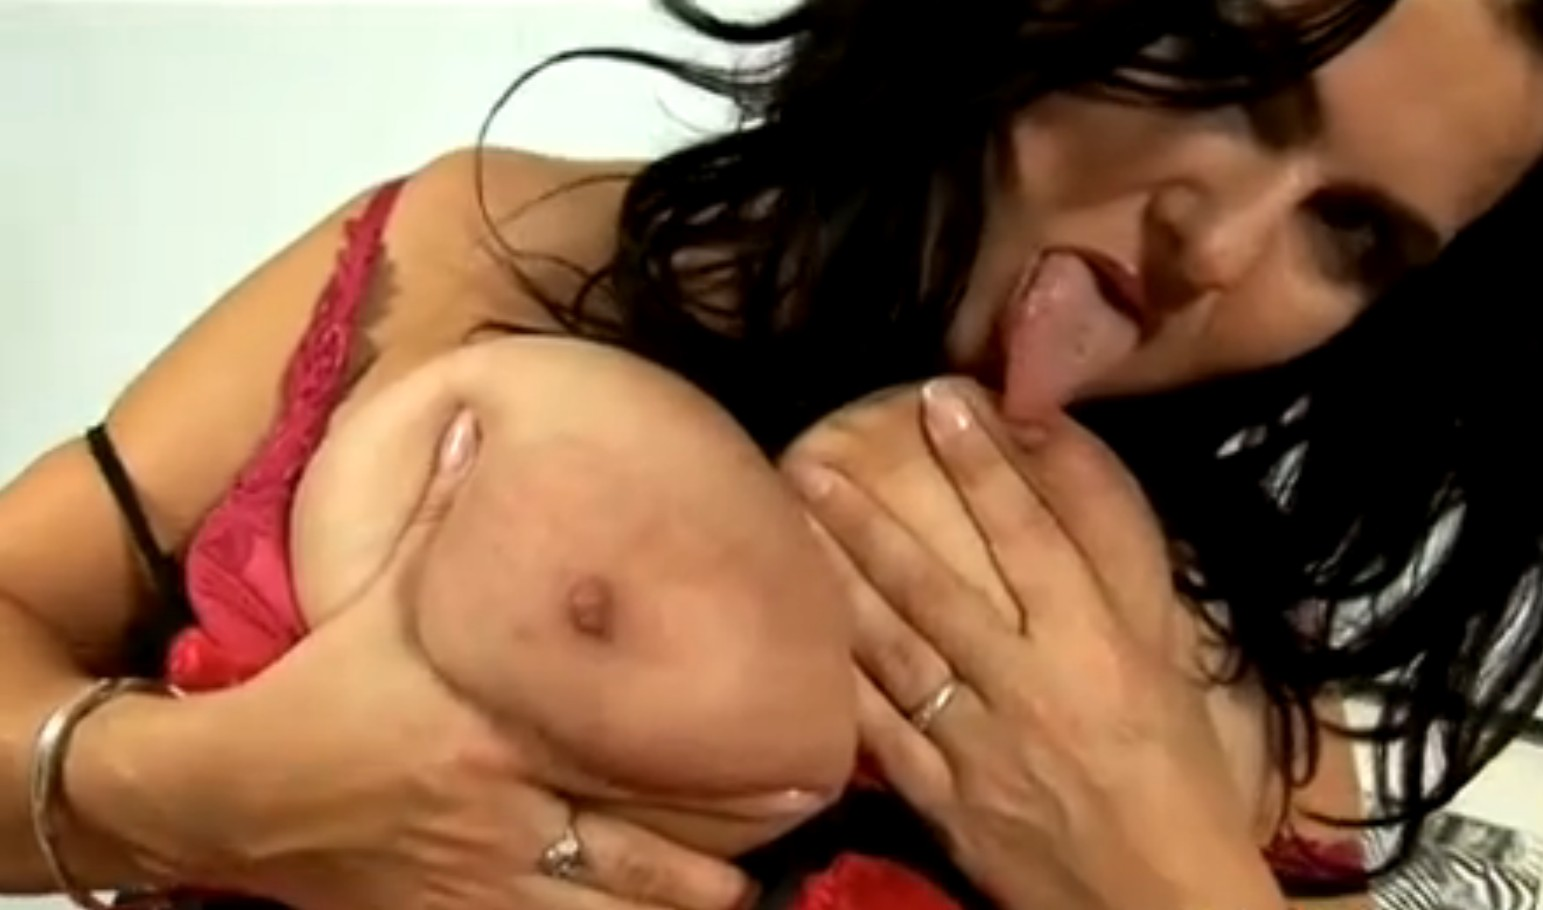 Horny dirty cum slut